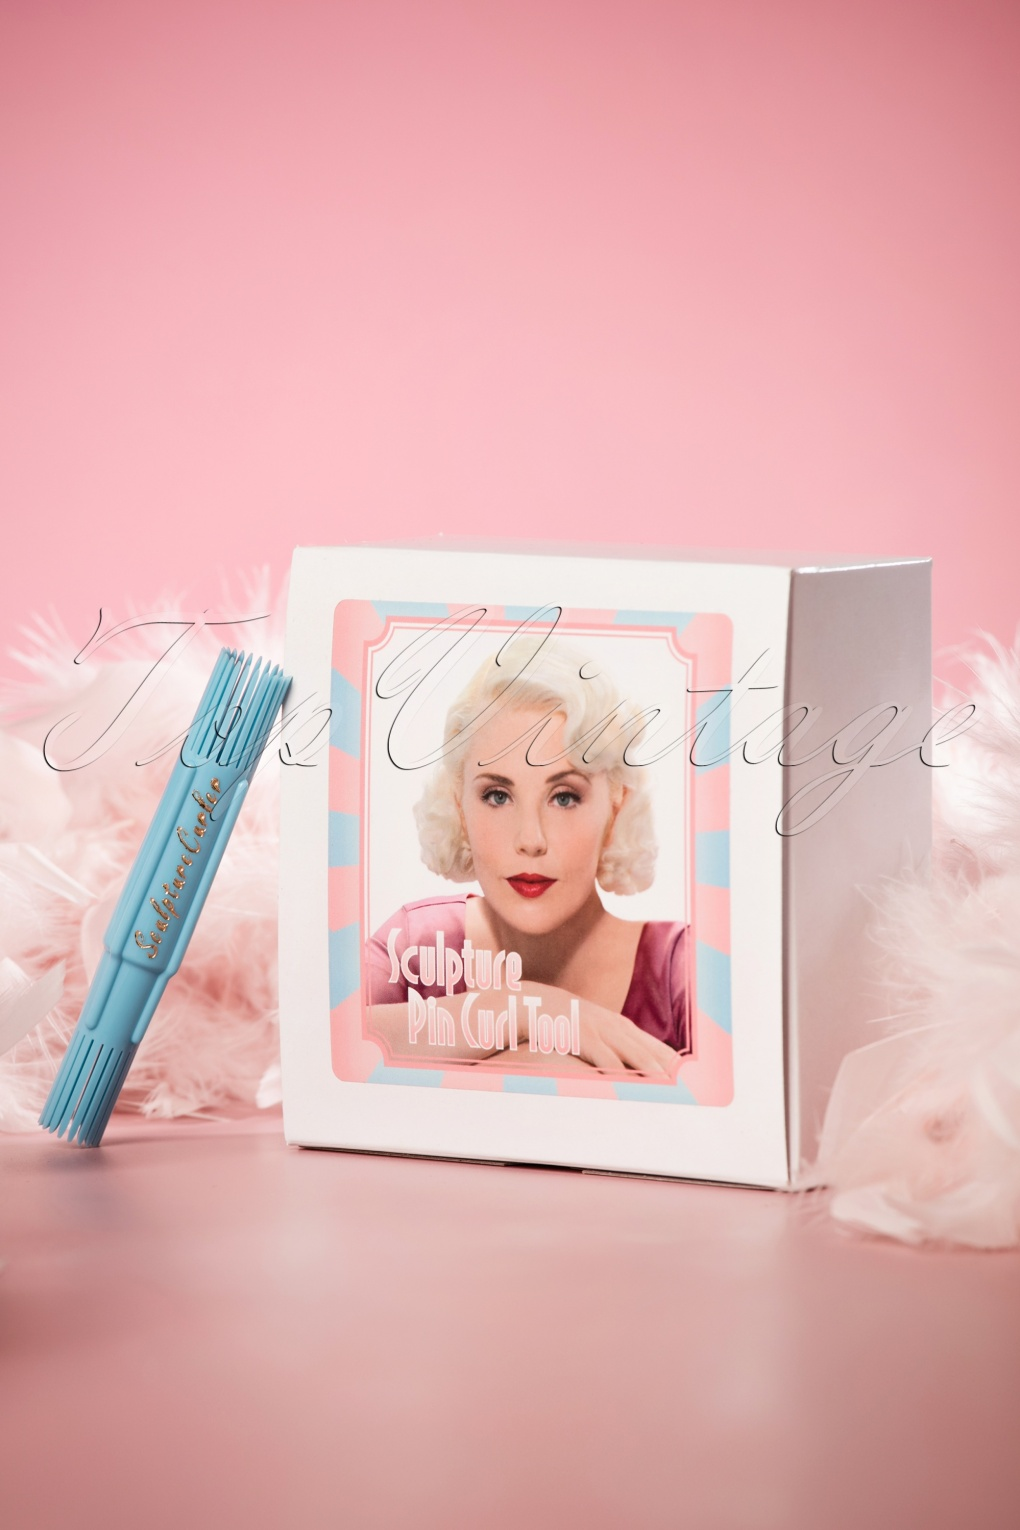 1940s Hairstyles- History of Women's Hairstyles Vintage Hairstyling Sculpture Pin Curl Tool Box Set £31.74 AT vintagedancer.com